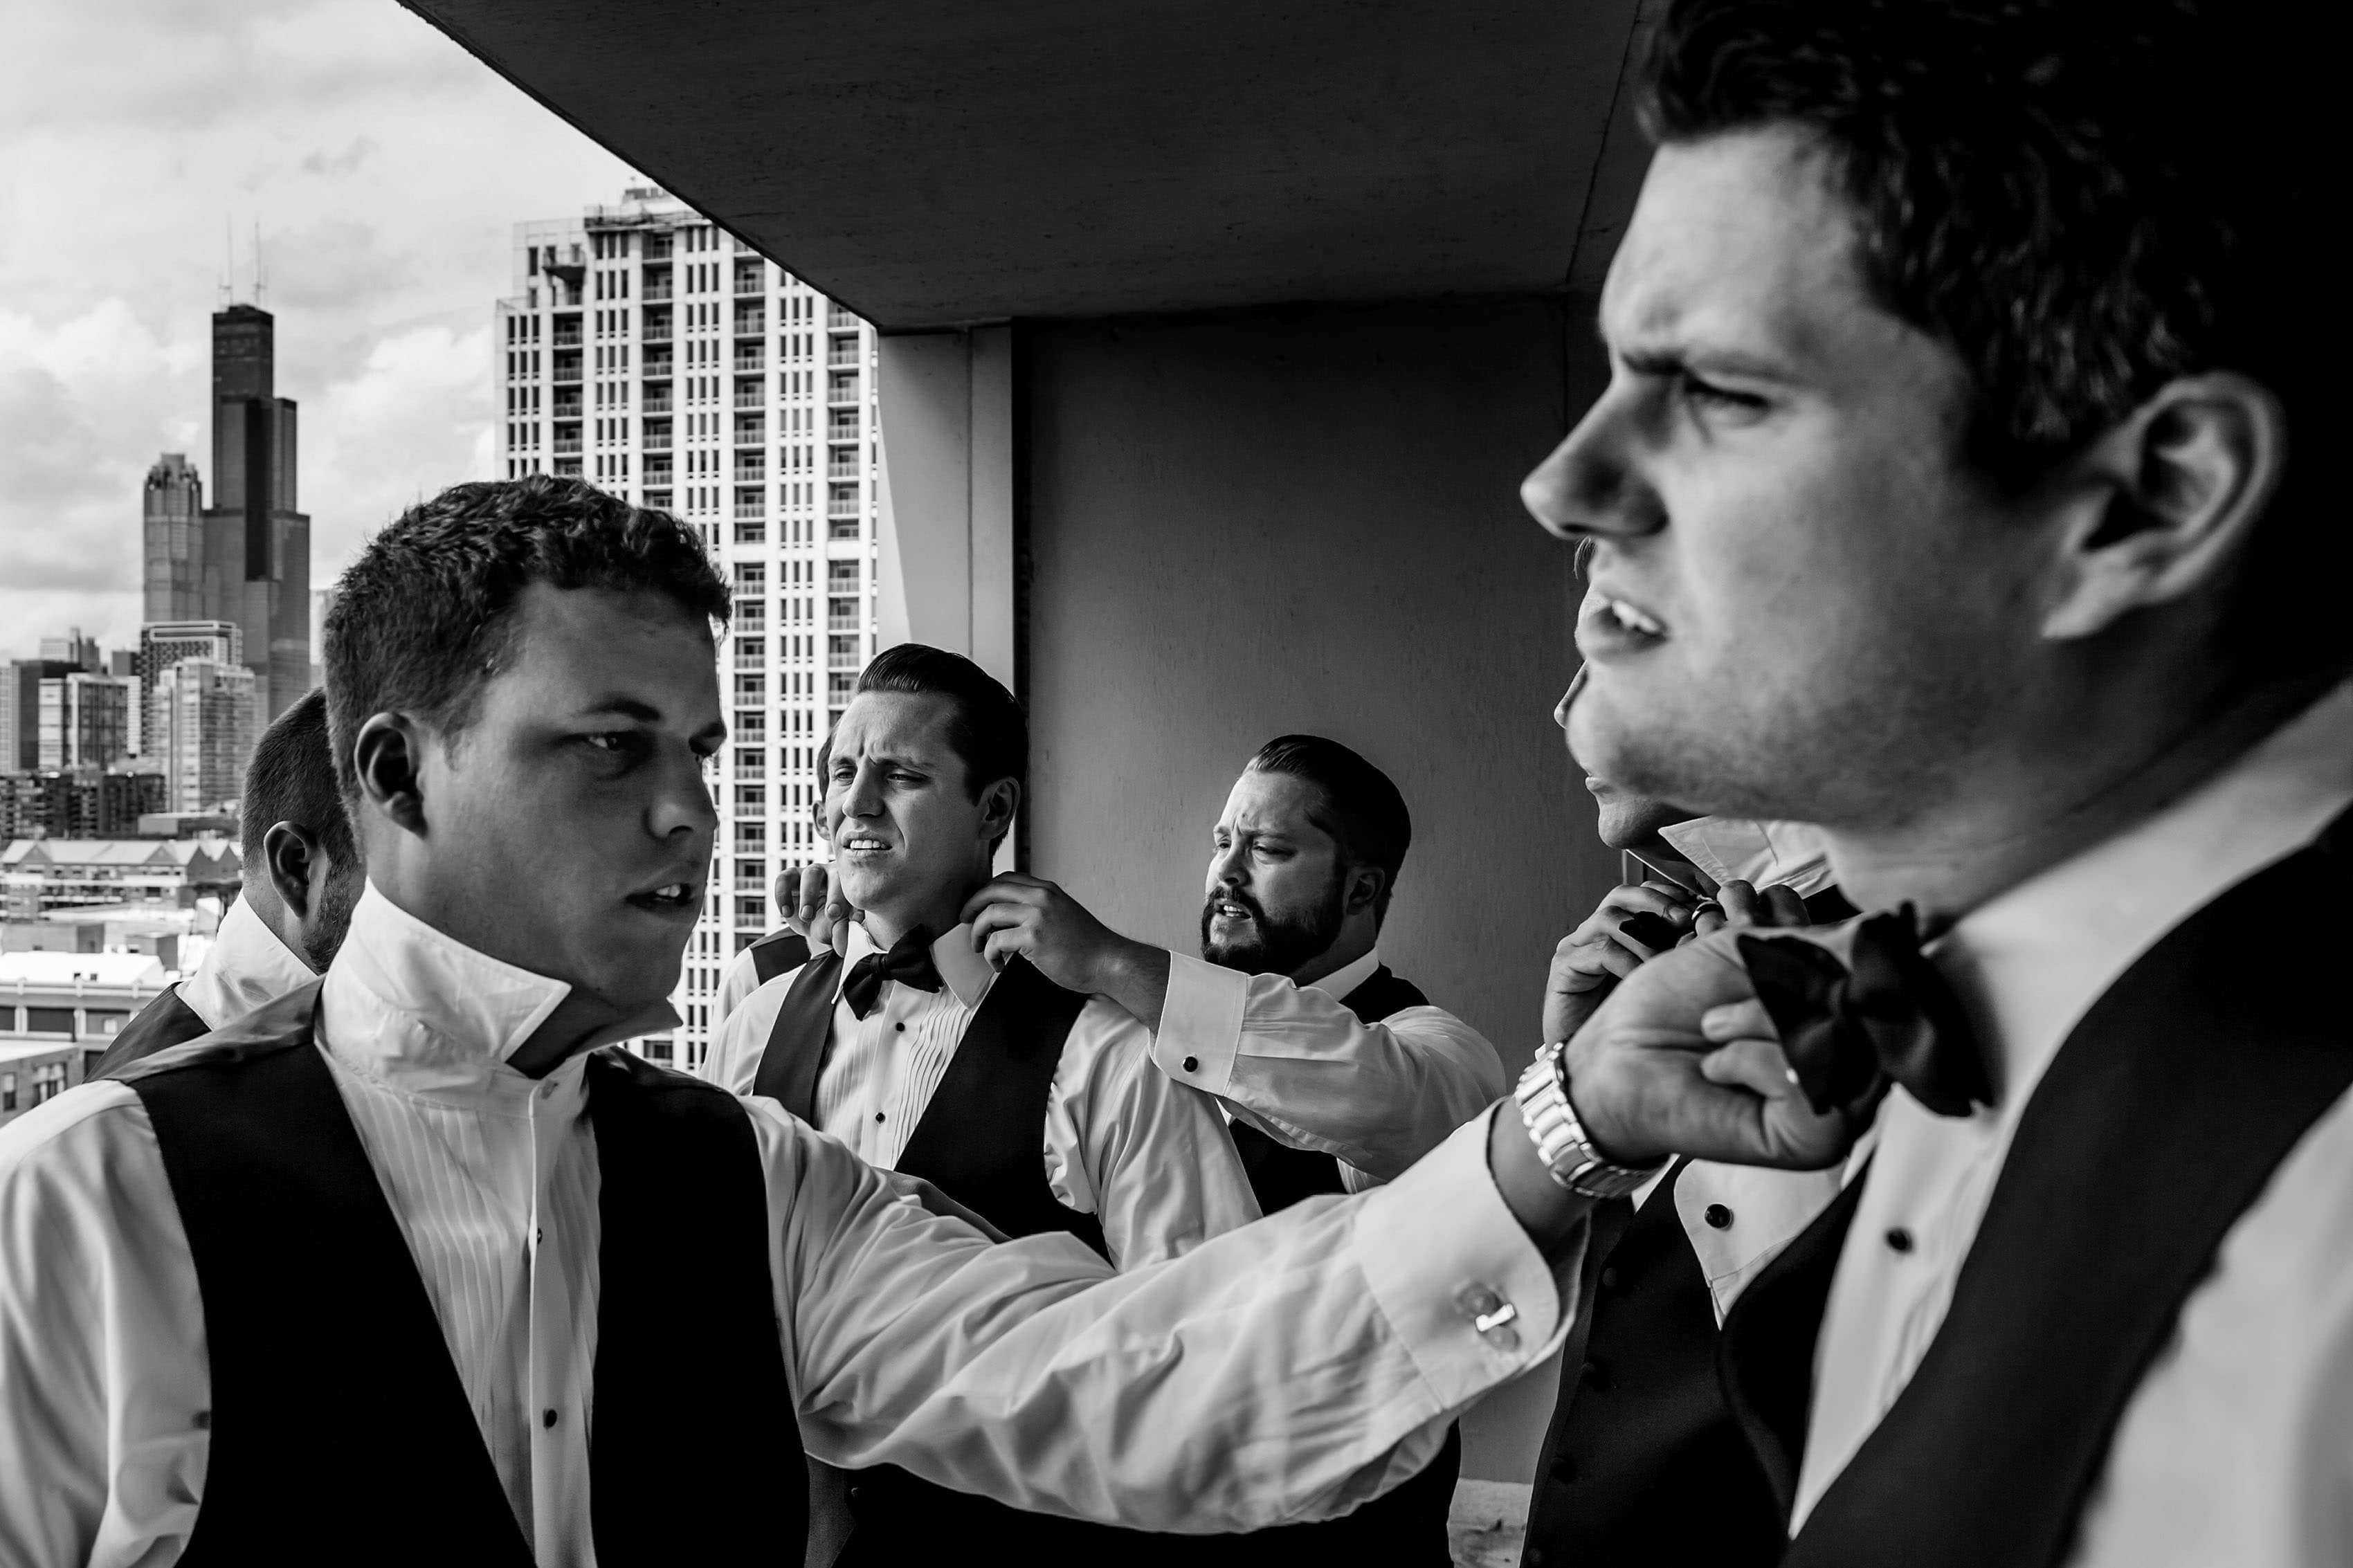 The groom and his groomsmen help adjust each others bowtie near Willis Tower in Chicago